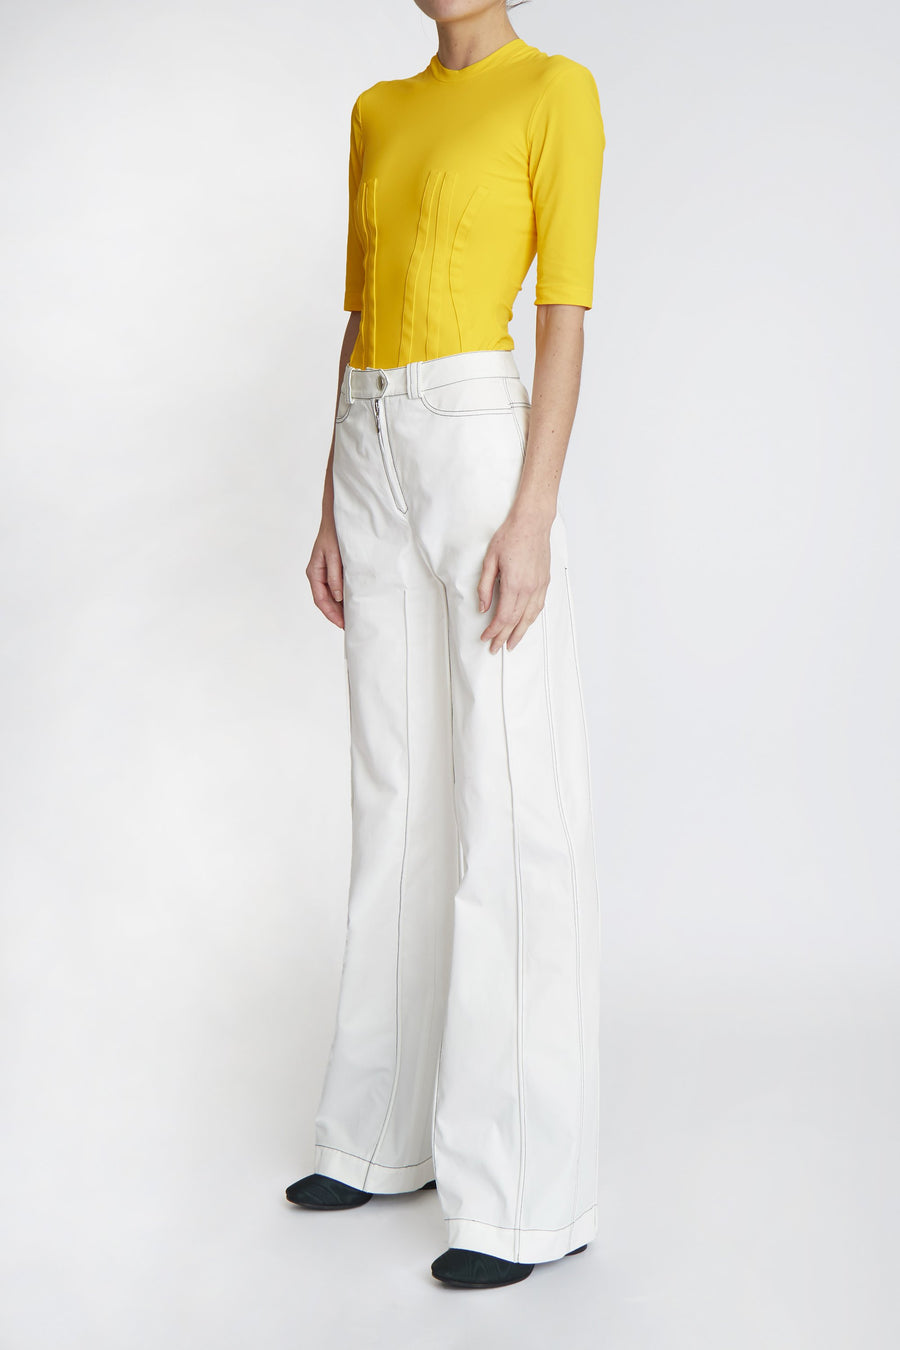 Bromide Square Pant White